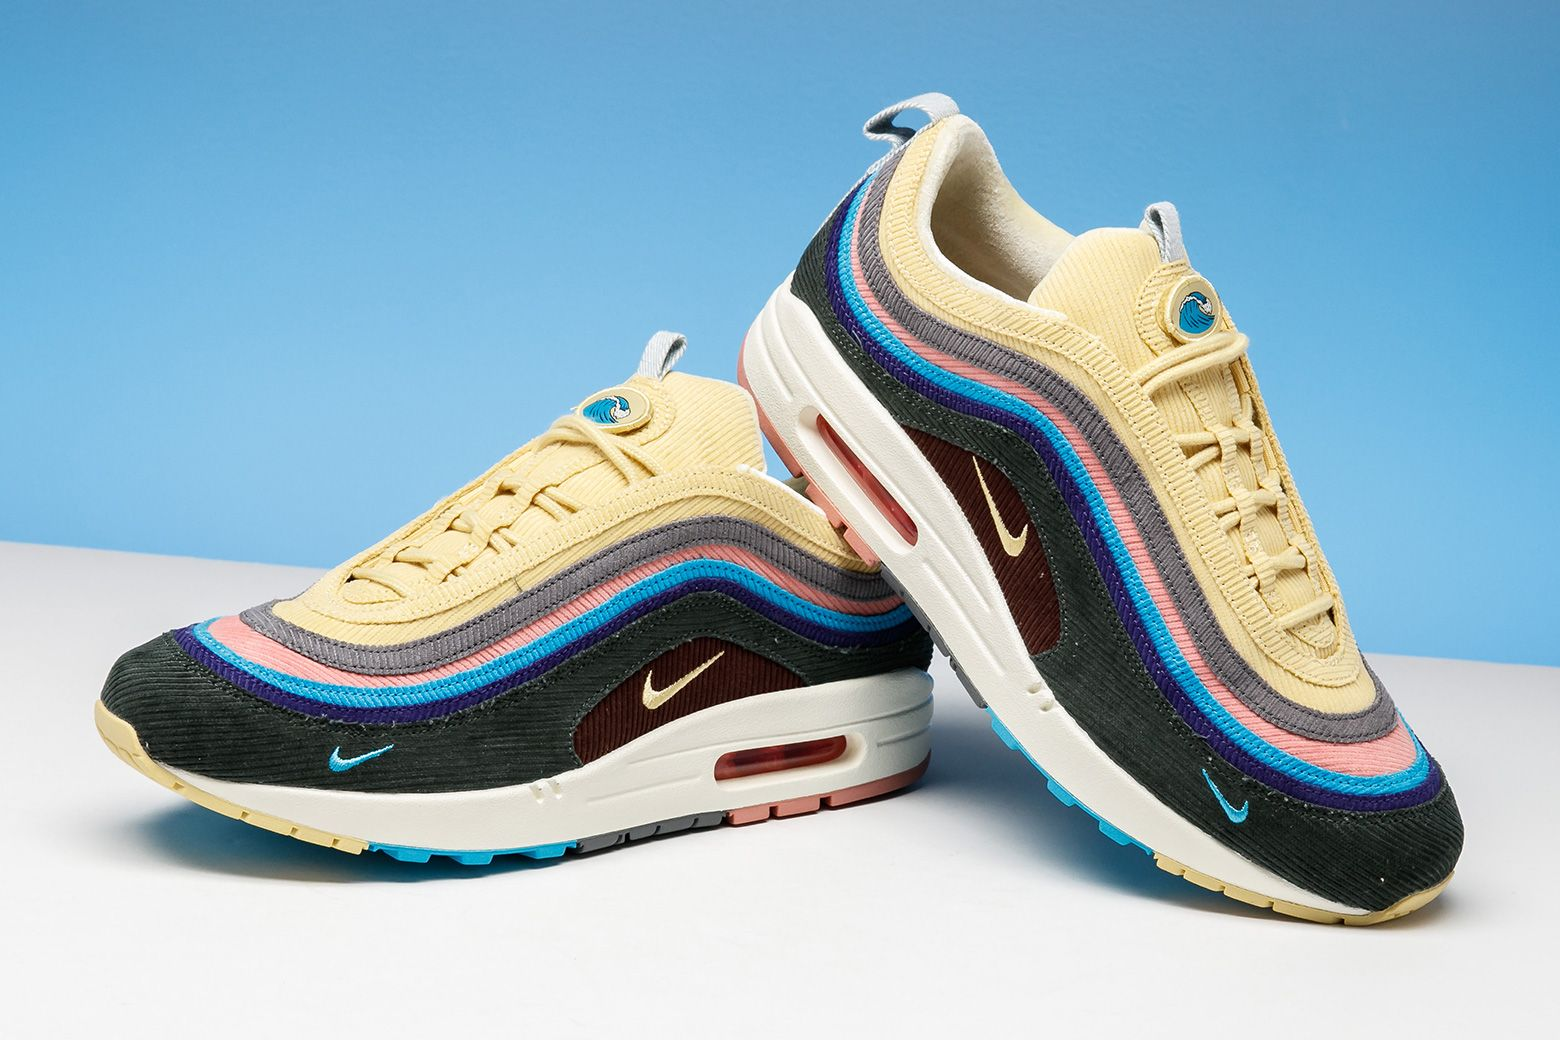 online retailer d878e 3ff1e Sneaker Trivia  Who collaborated with Nike on this Air Max 1 97 hybrid